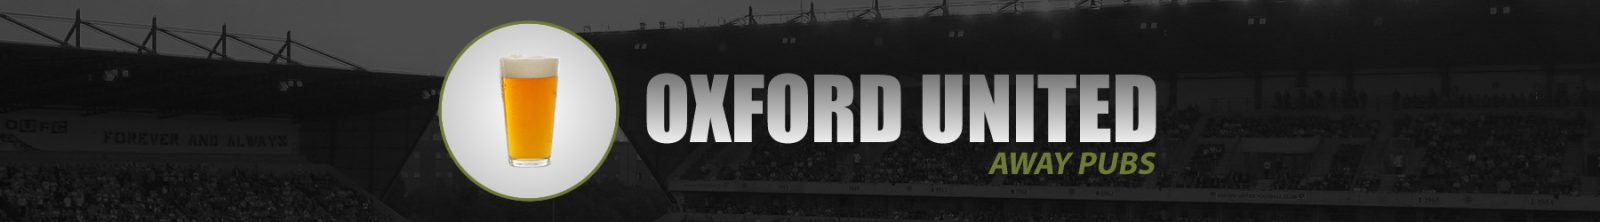 Oxford United Away Pubs